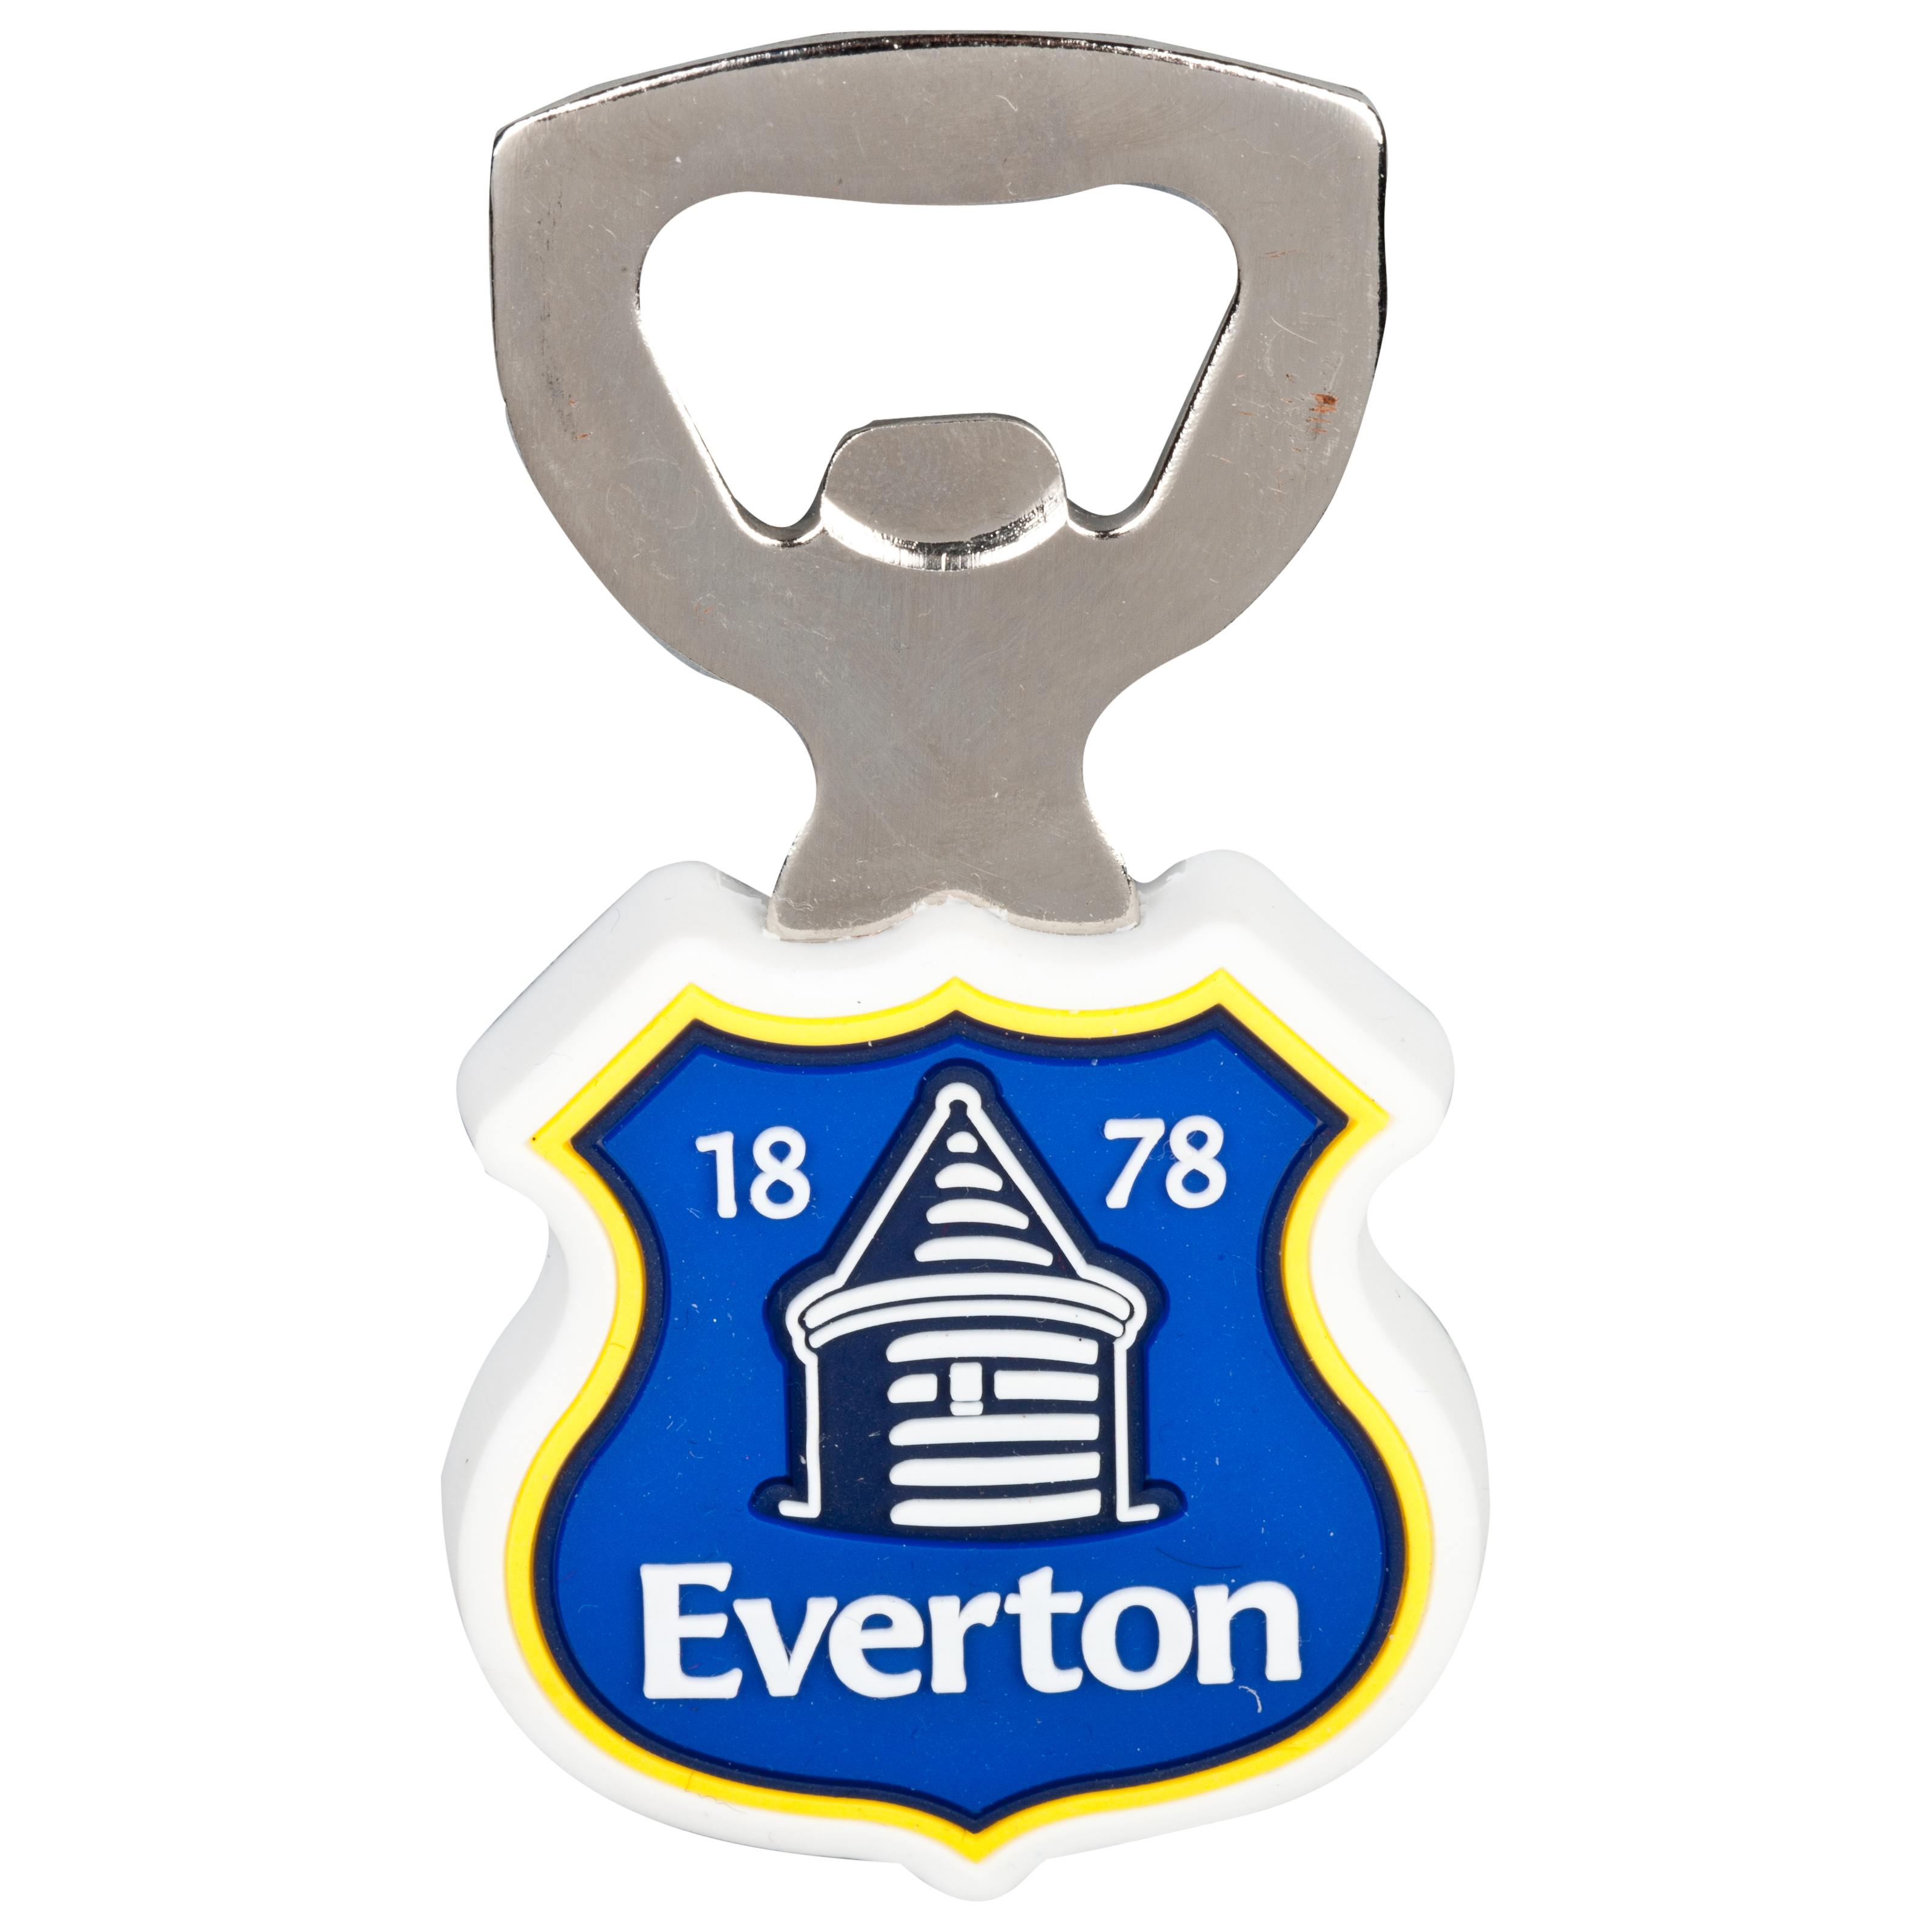 Everton Fridge Magnet Bottle Opener